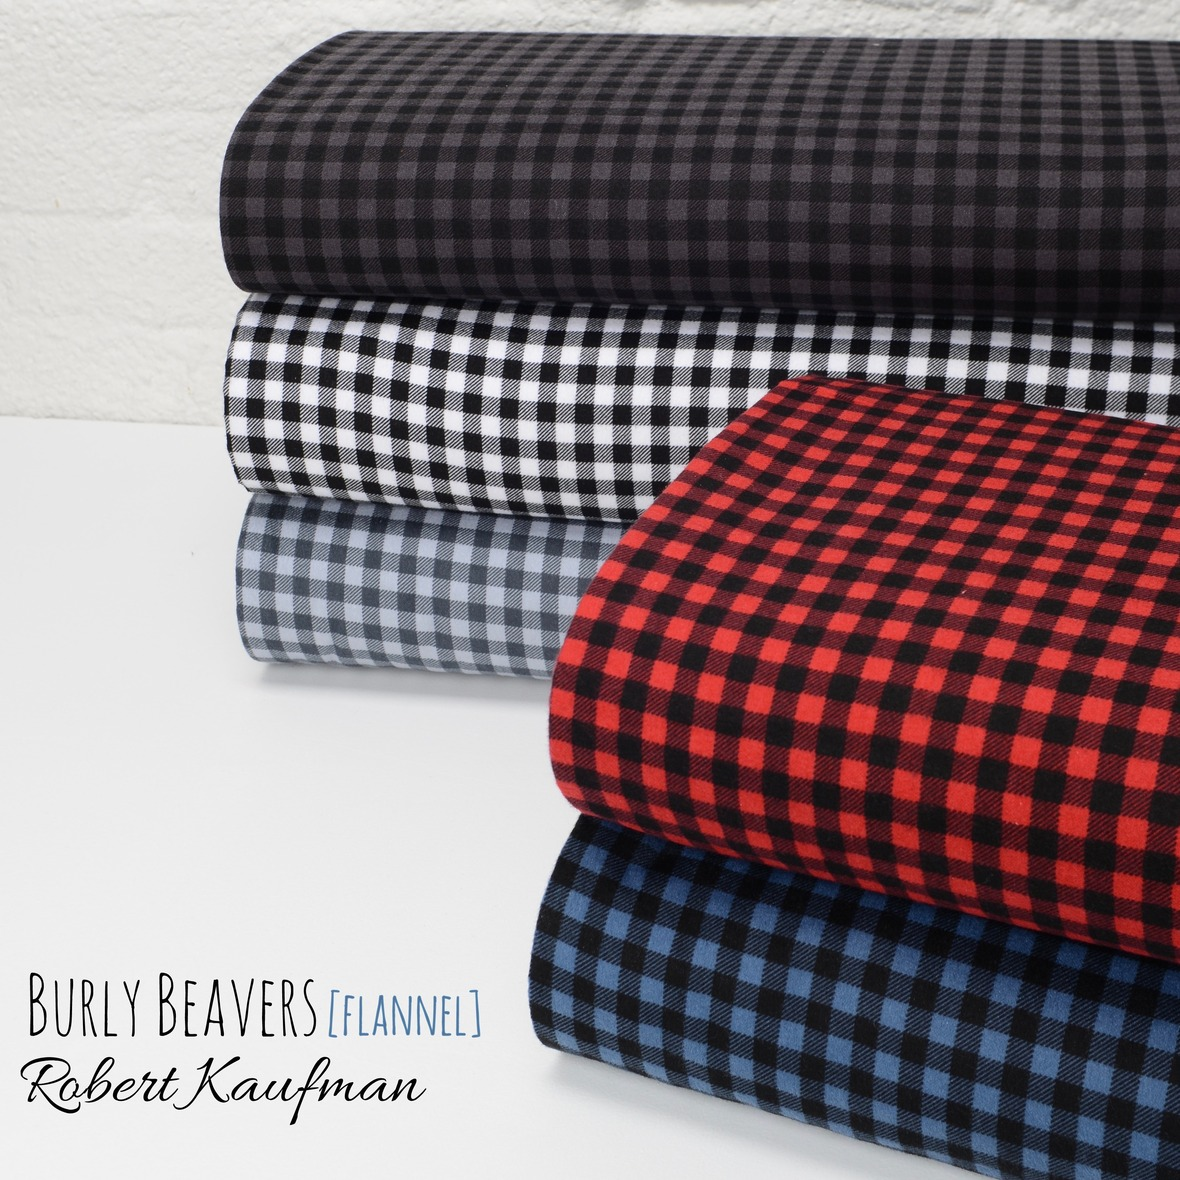 Burly Beavers Flannel Poster